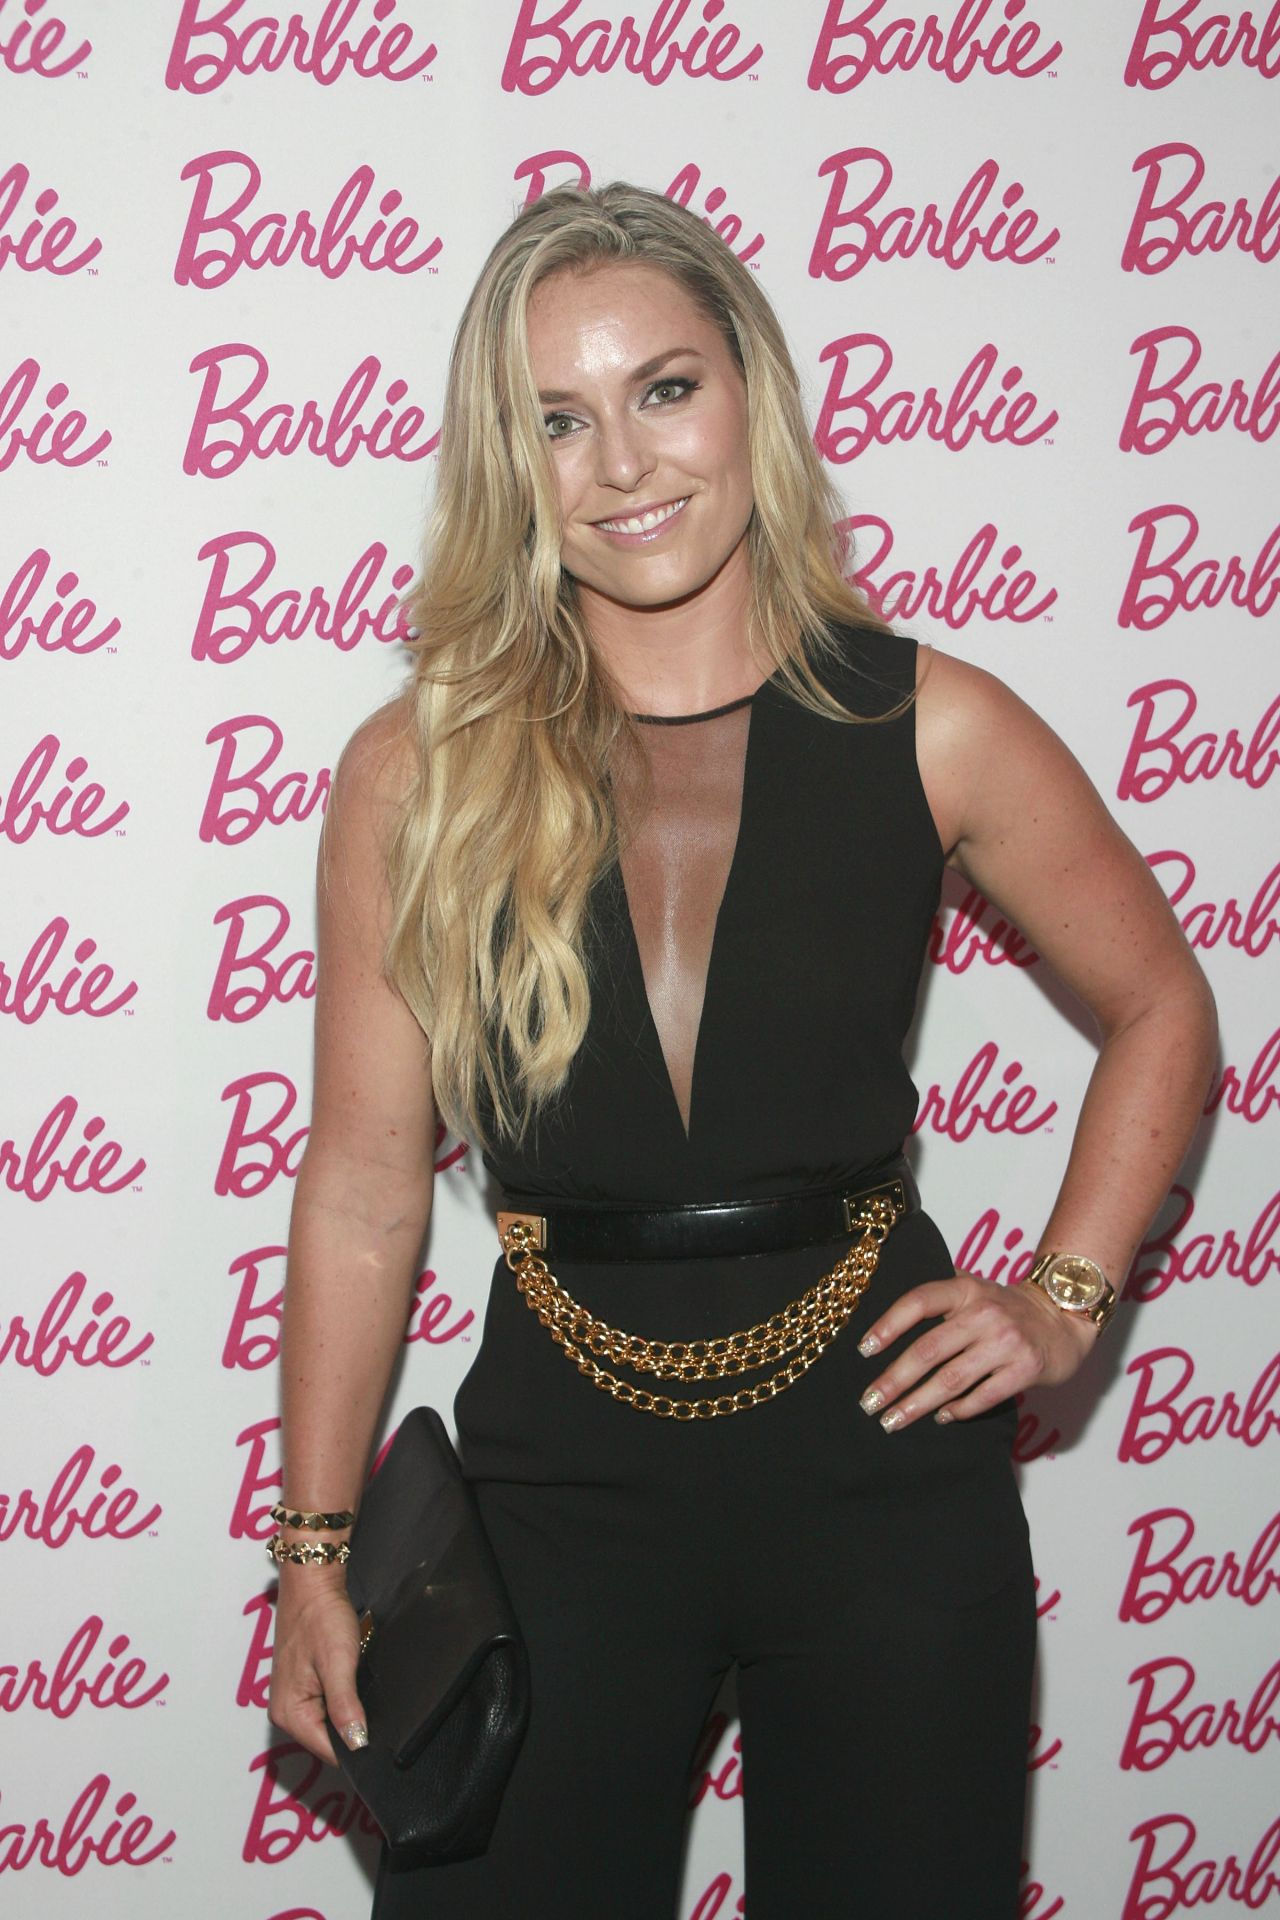 Lindsey Vonn - Barbie & CFDA Event in New York City - September 2014